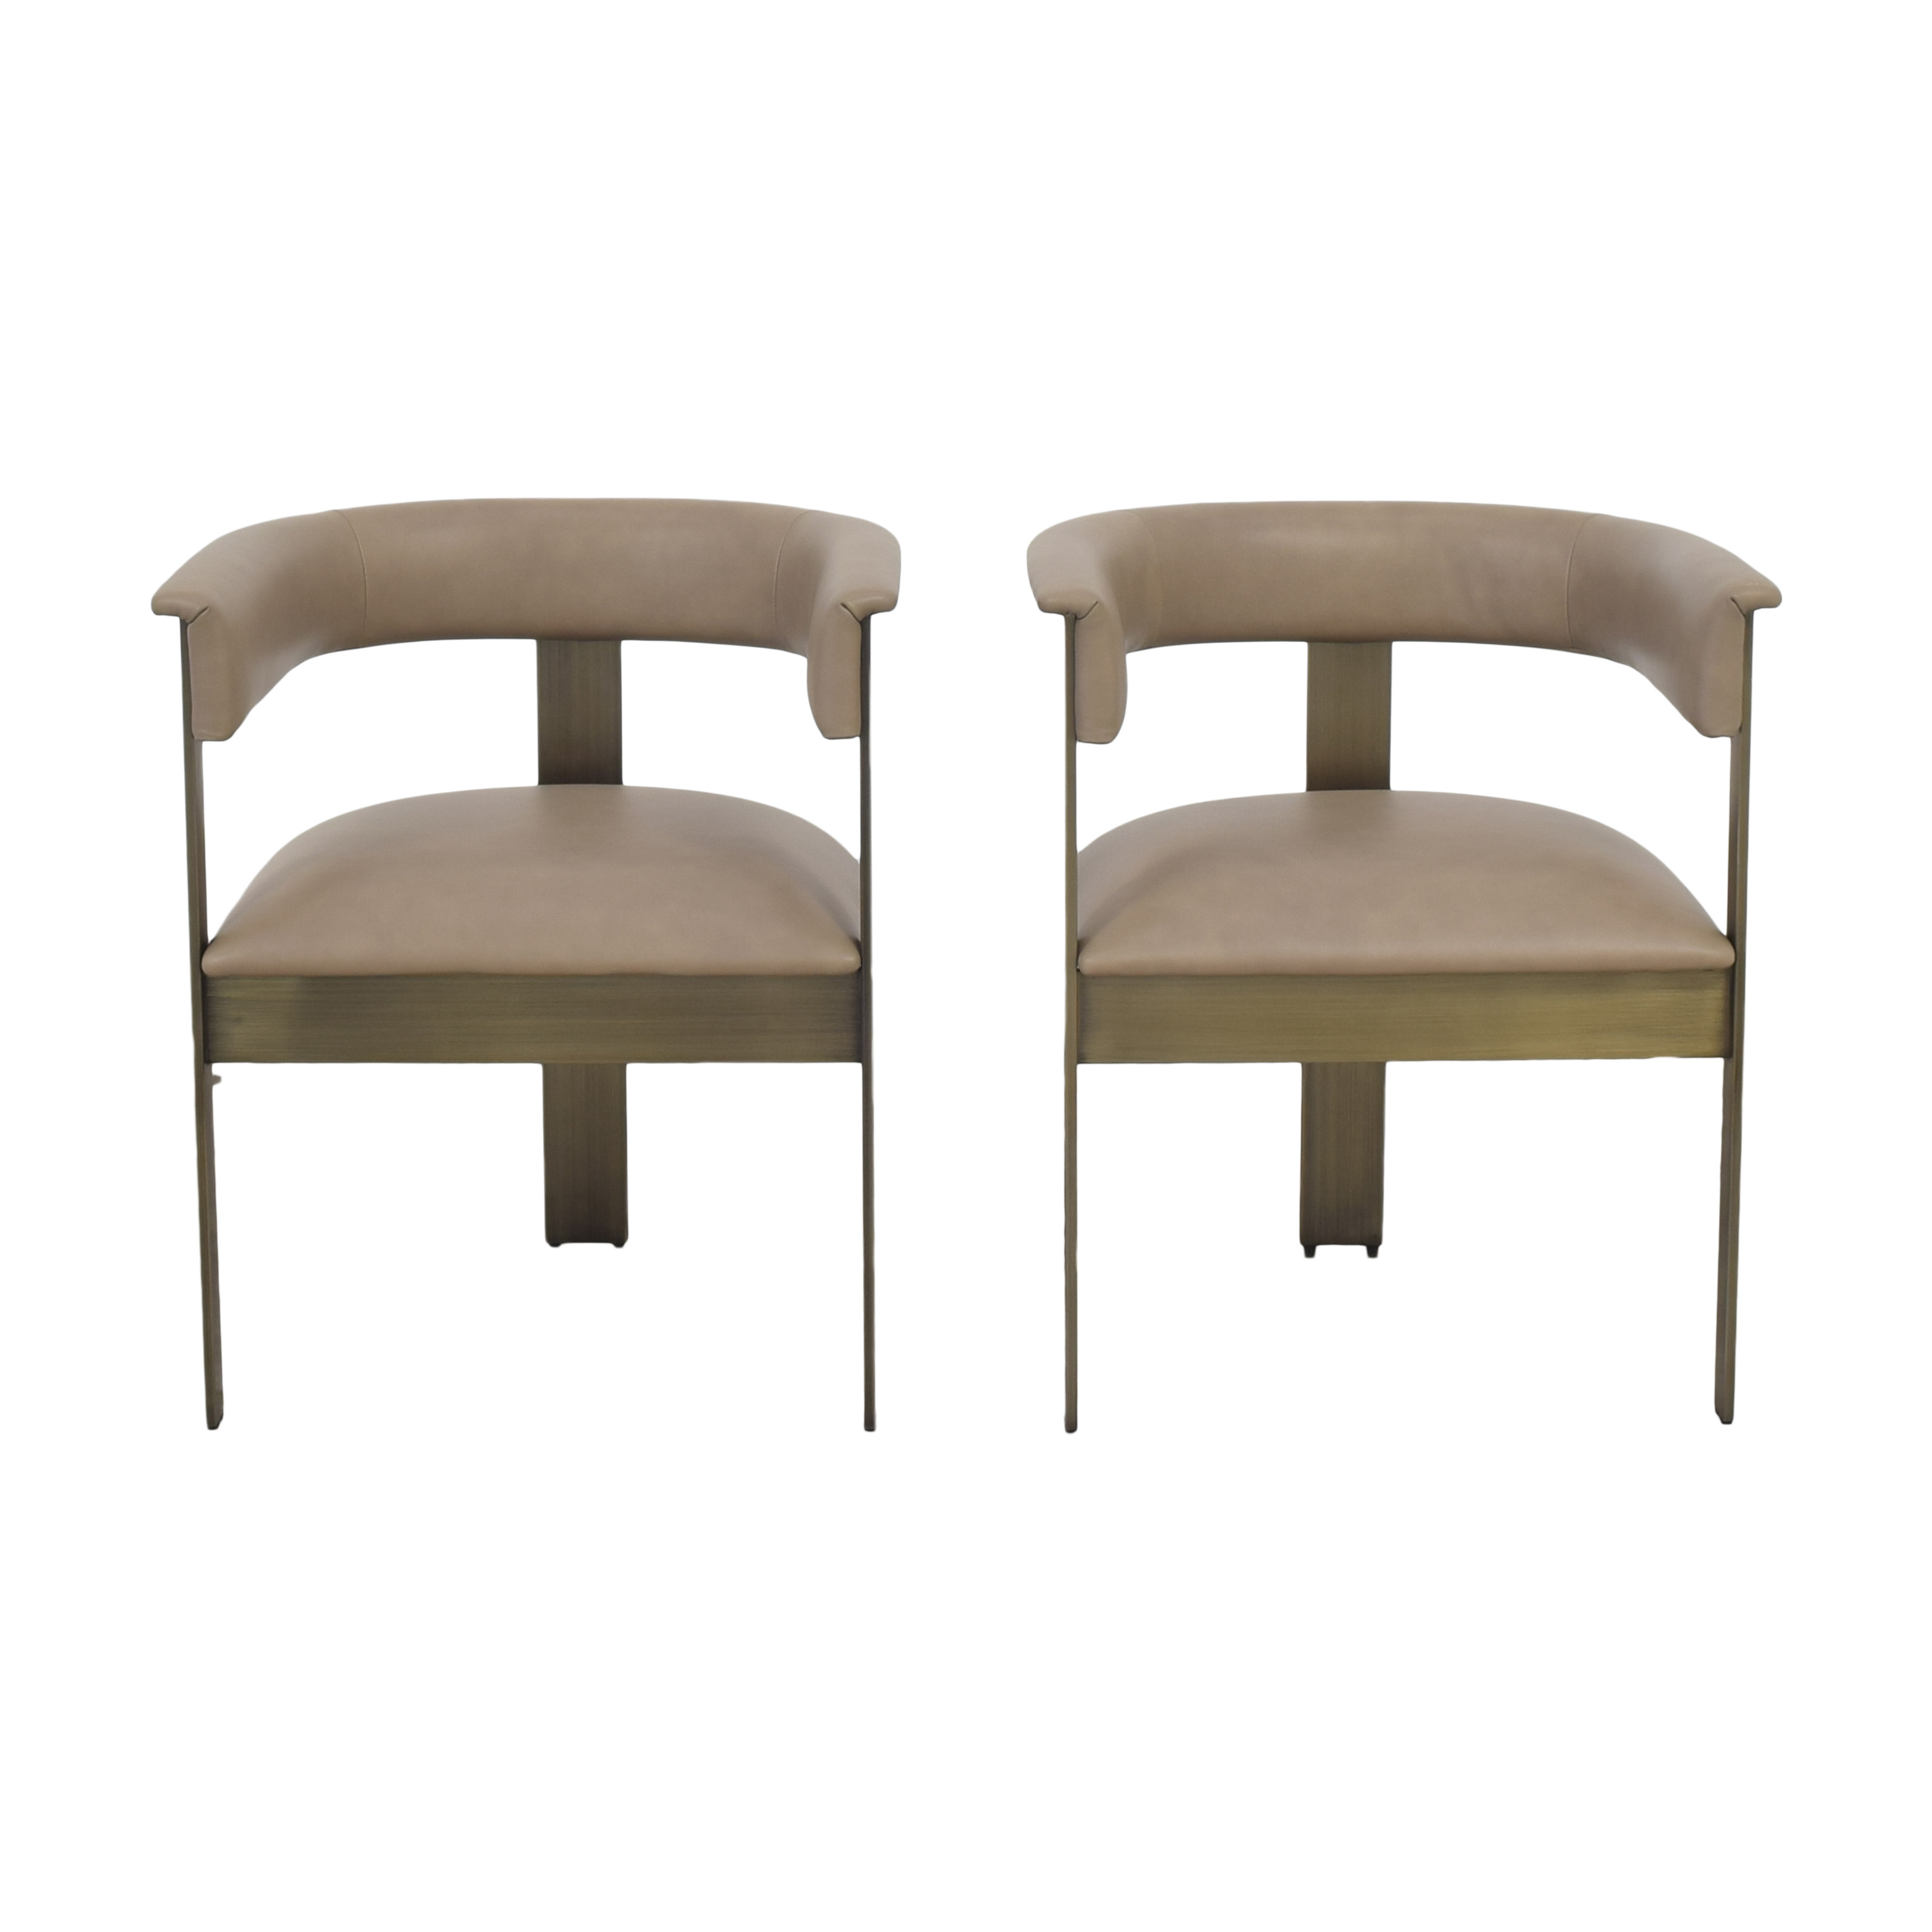 Interlude Home Interlude Home Darcy Dining Arm Chairs pa